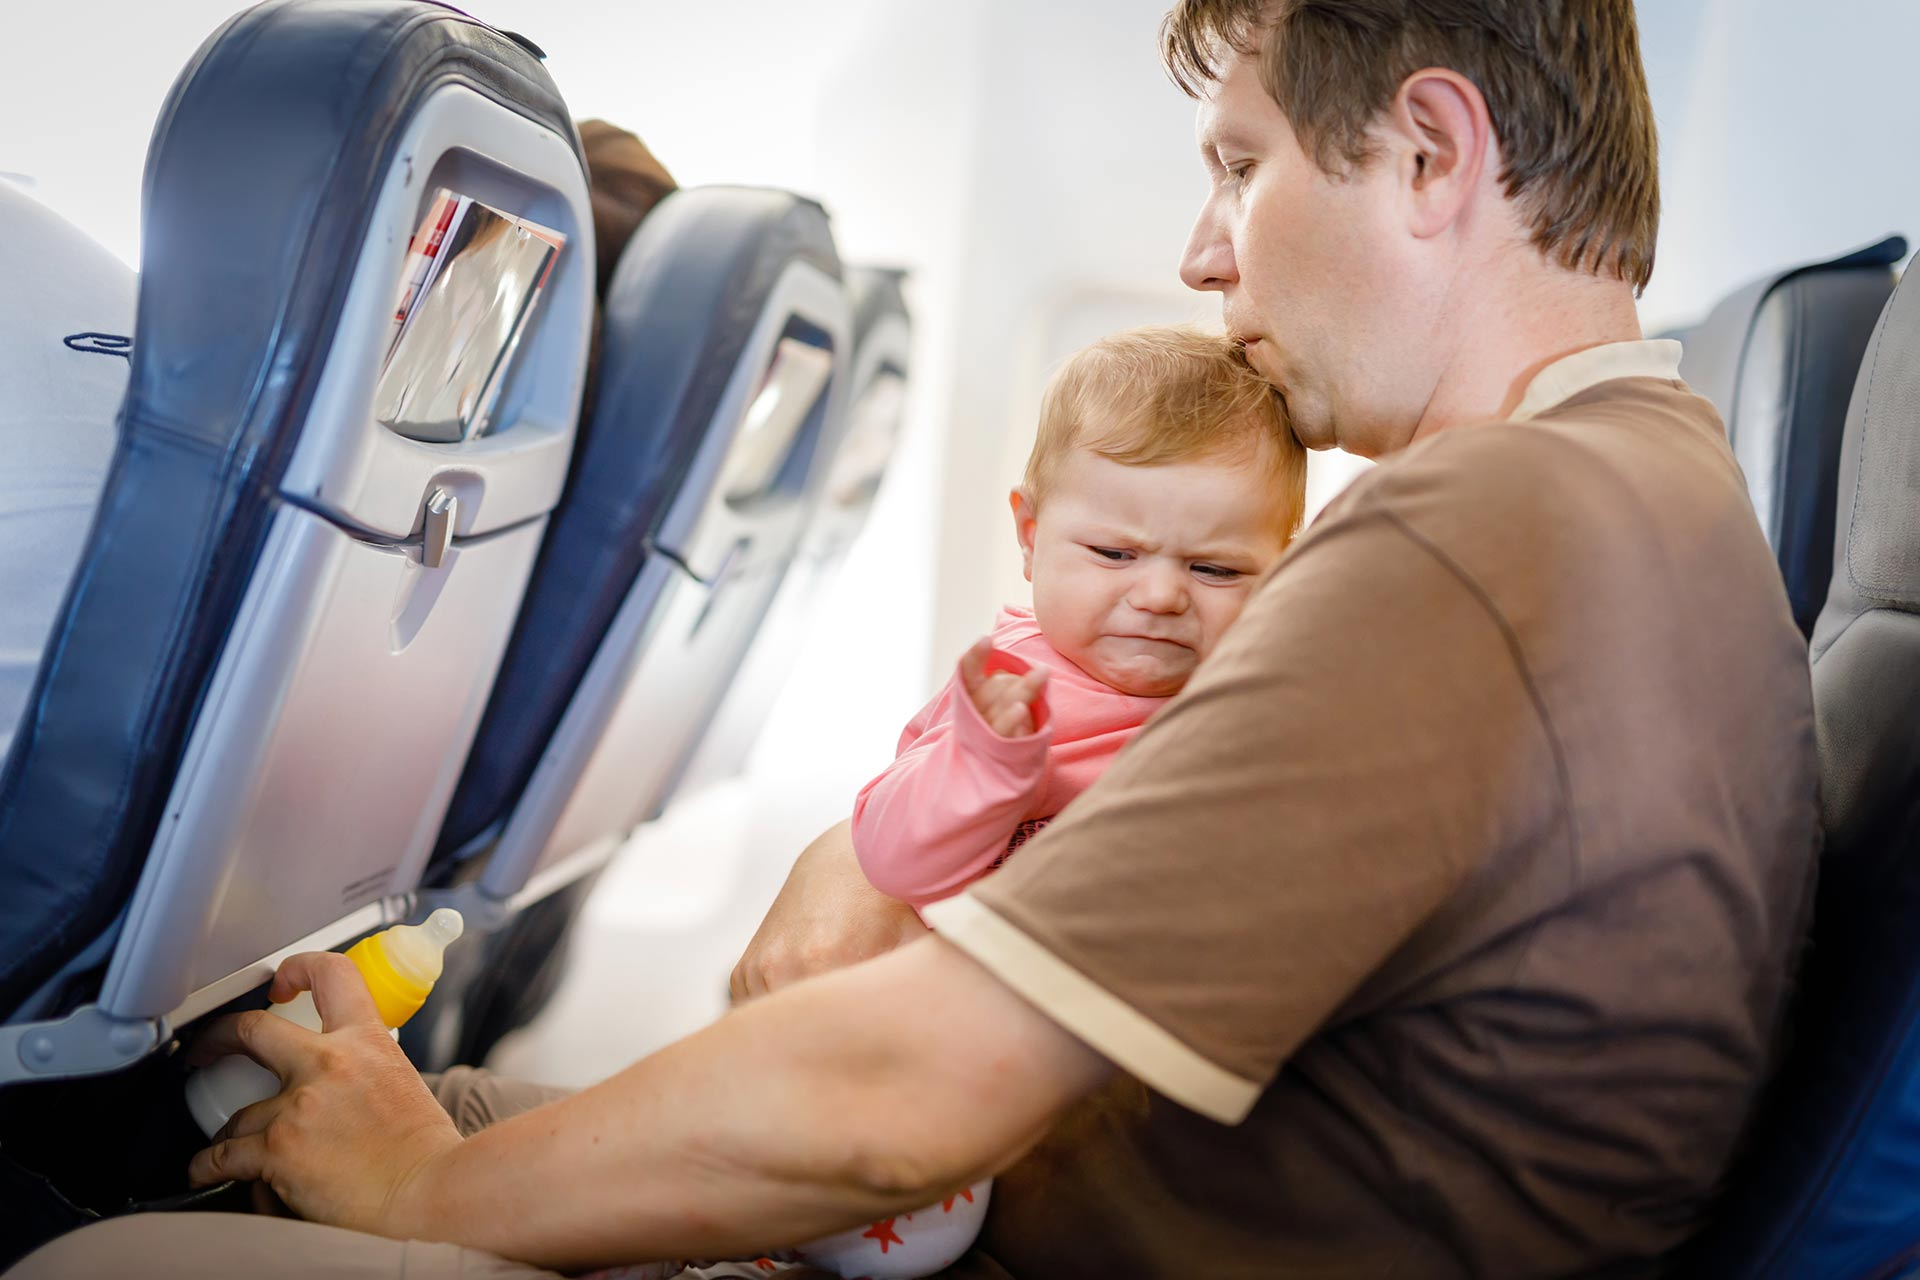 Crying baby on plane